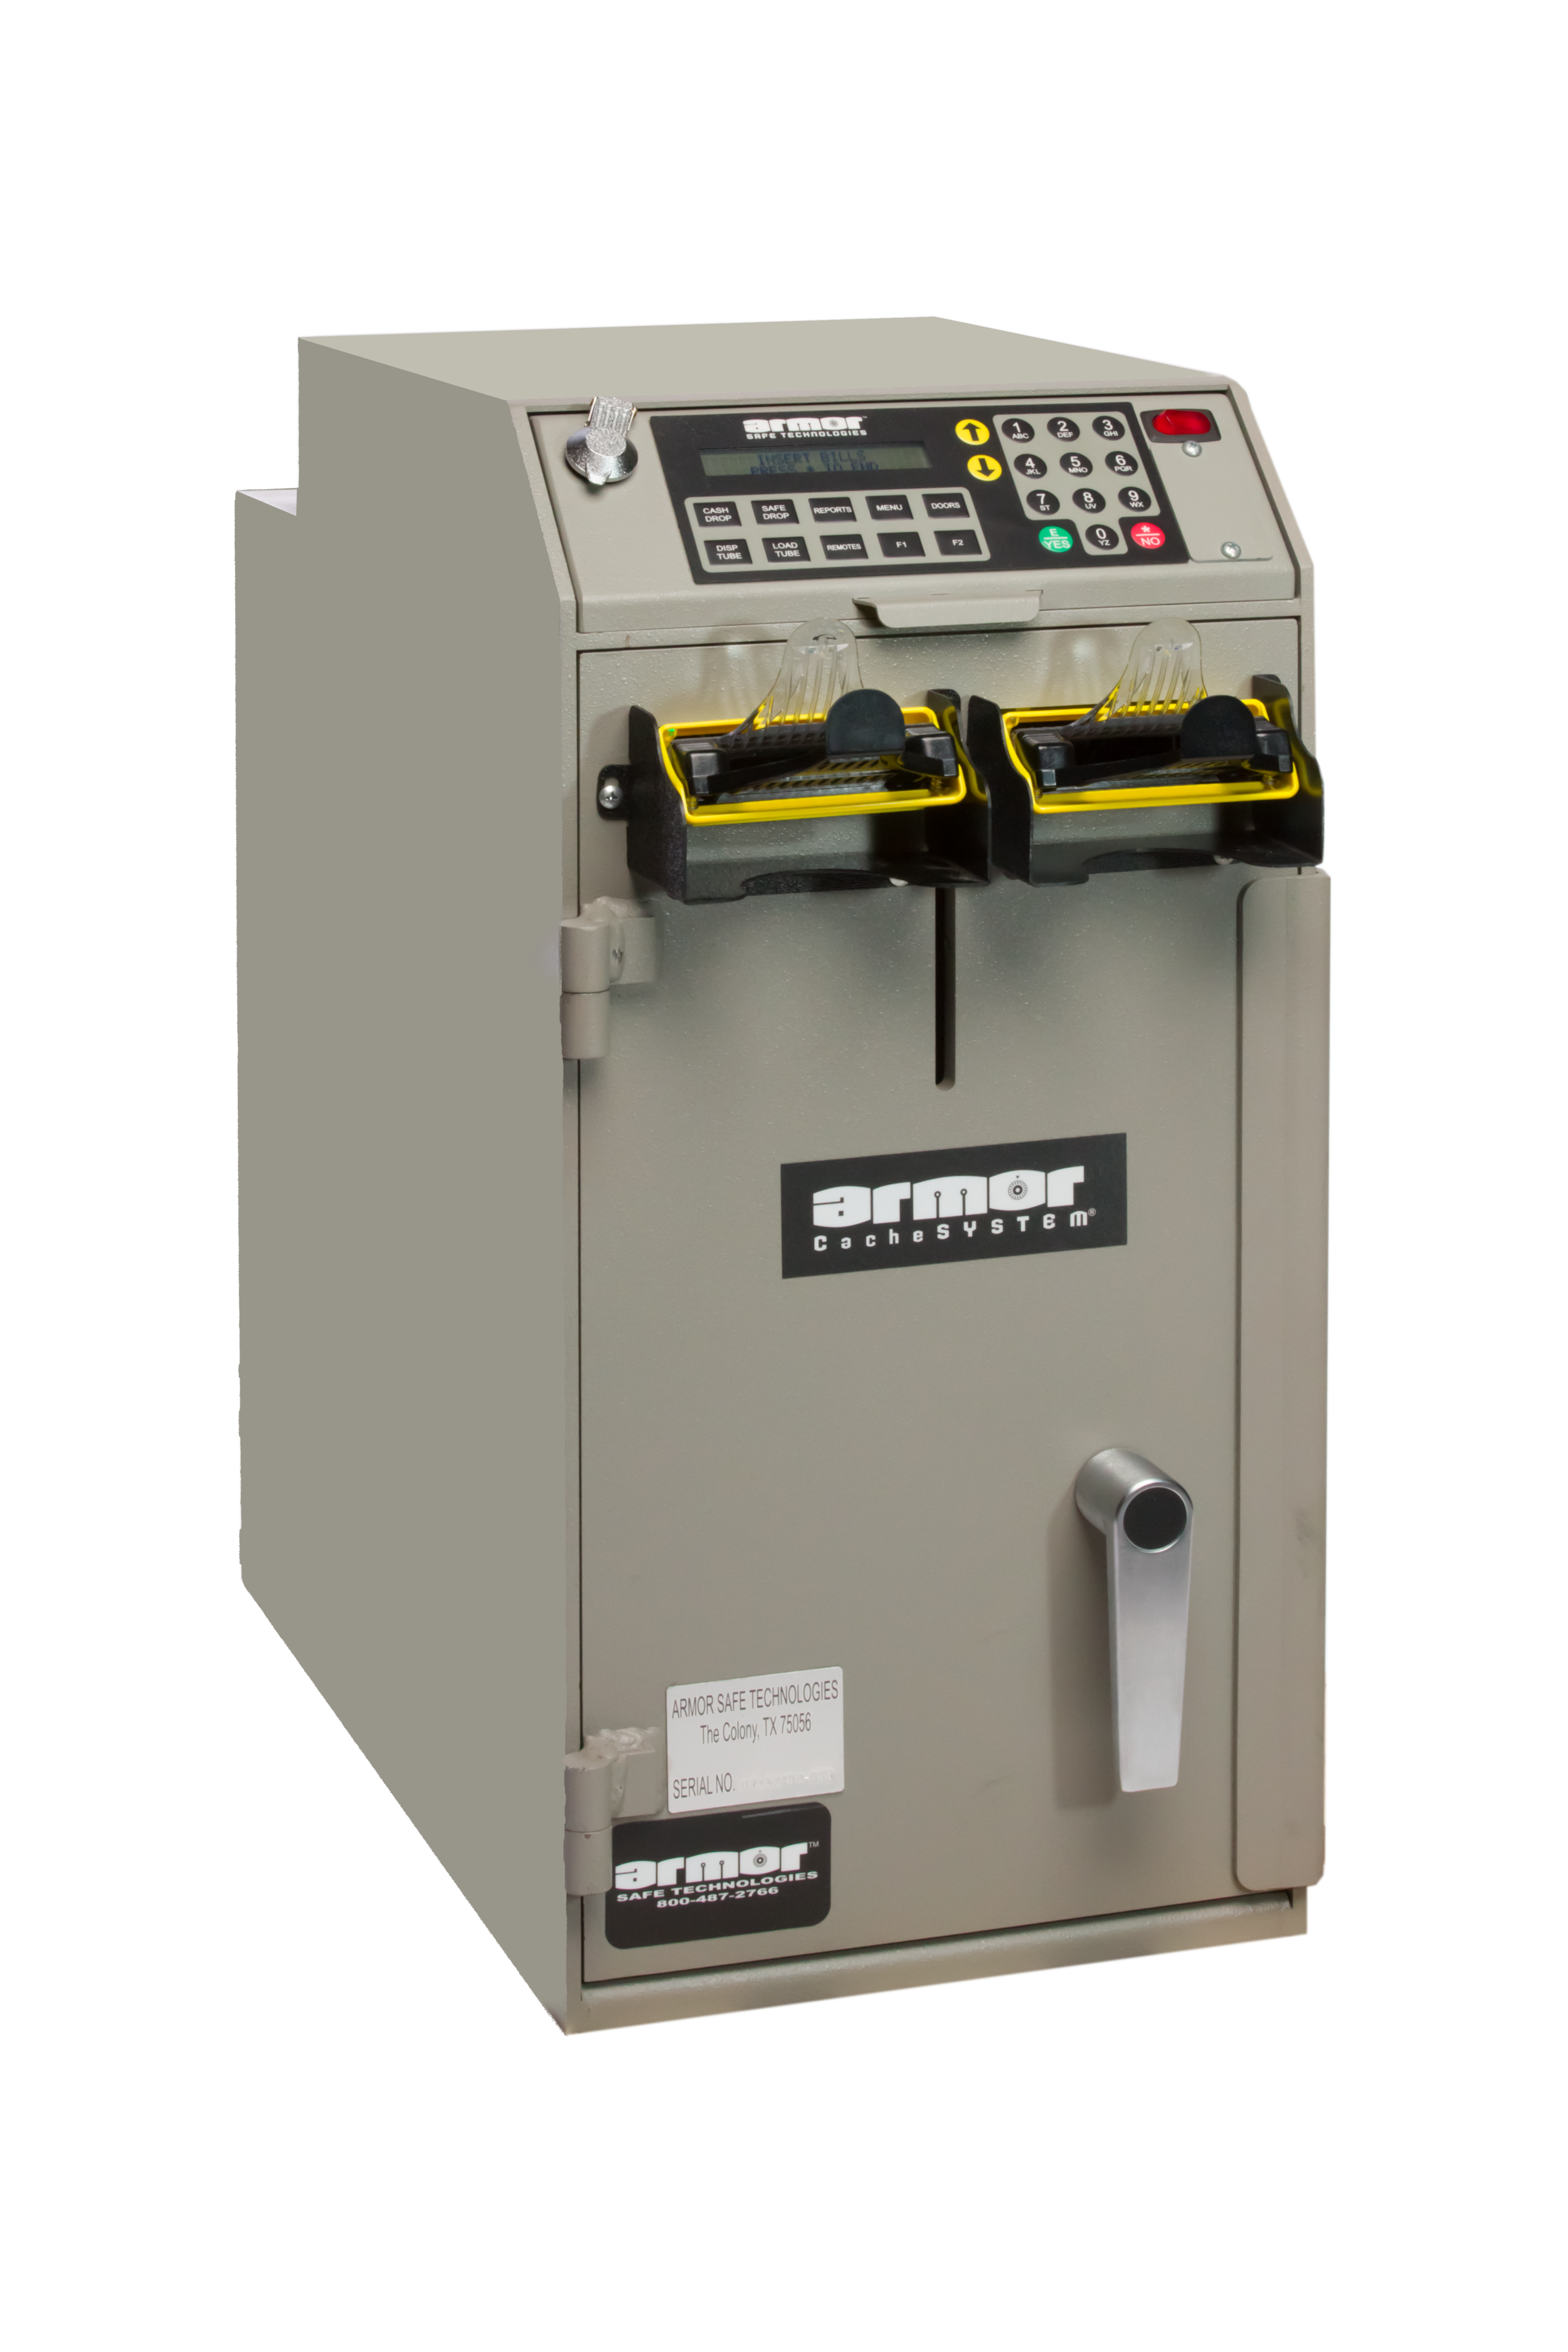 CacheSYSTEM 2400   Shown equipped with  2 bulk-note bill validators